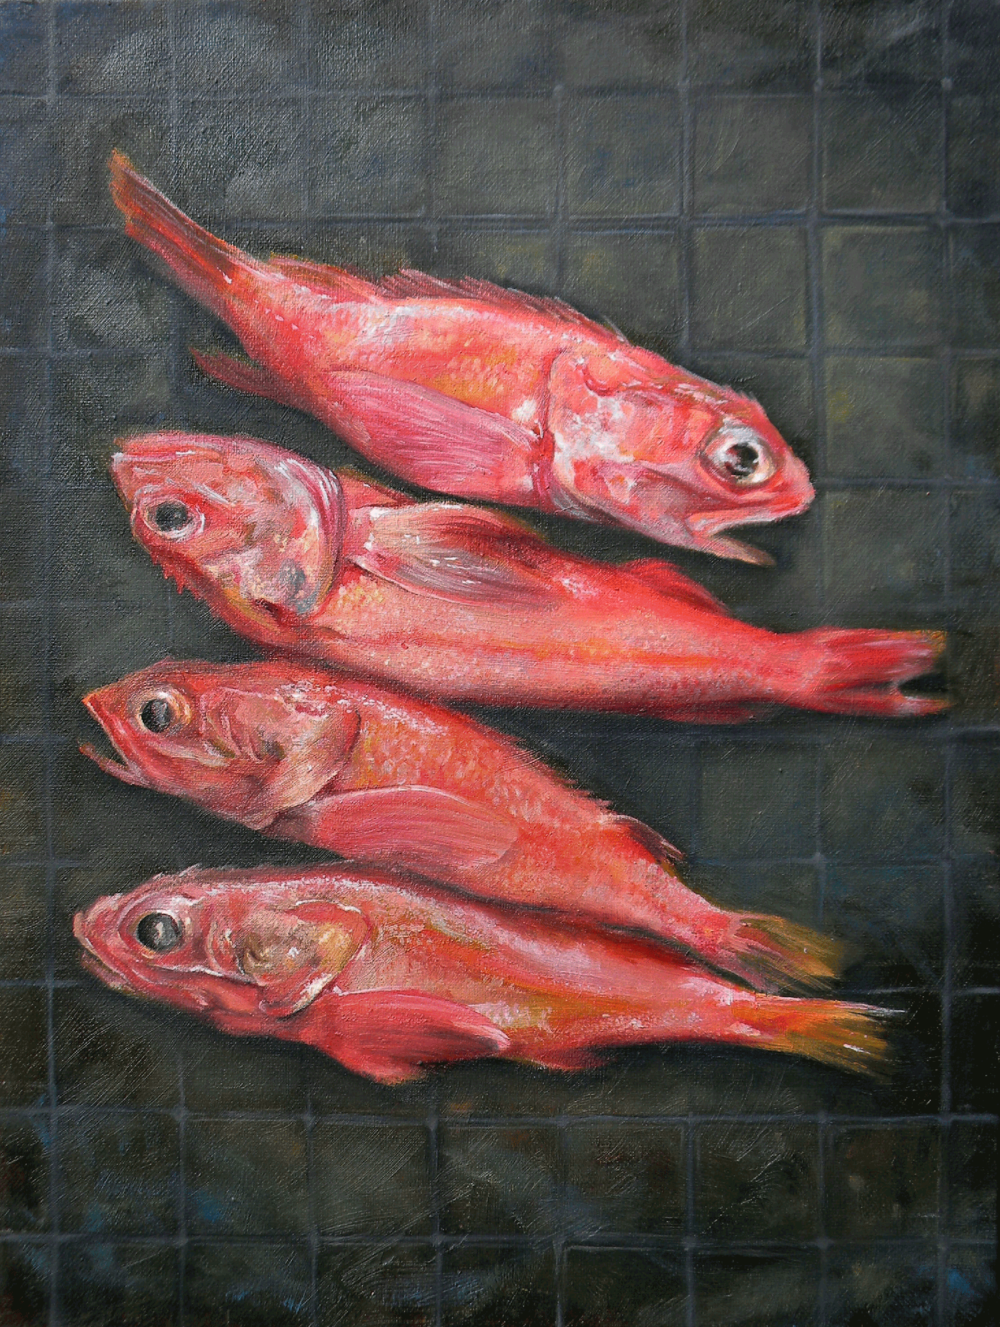 Orona_MorningFish_12%22x16%22_OilonCanvas_2019.png